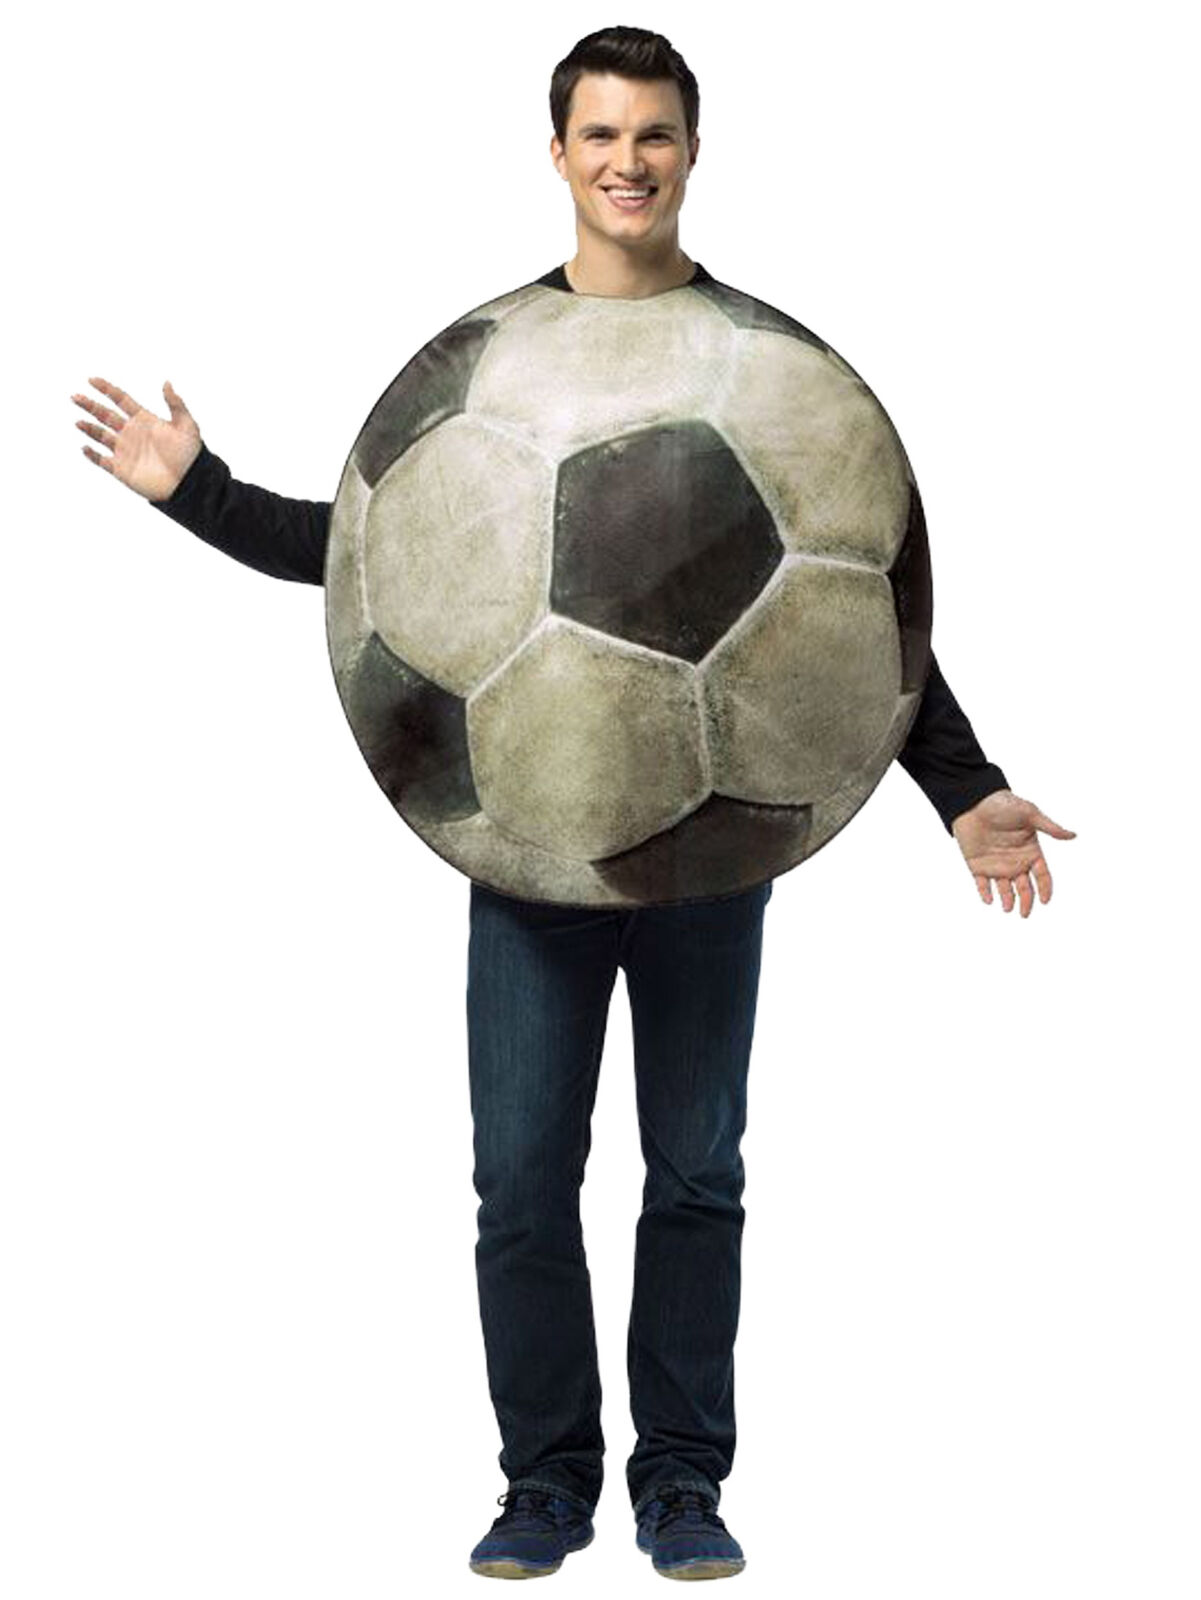 Get Real Soccer Ball Sport Funny Party Dress Up Women Men Costume